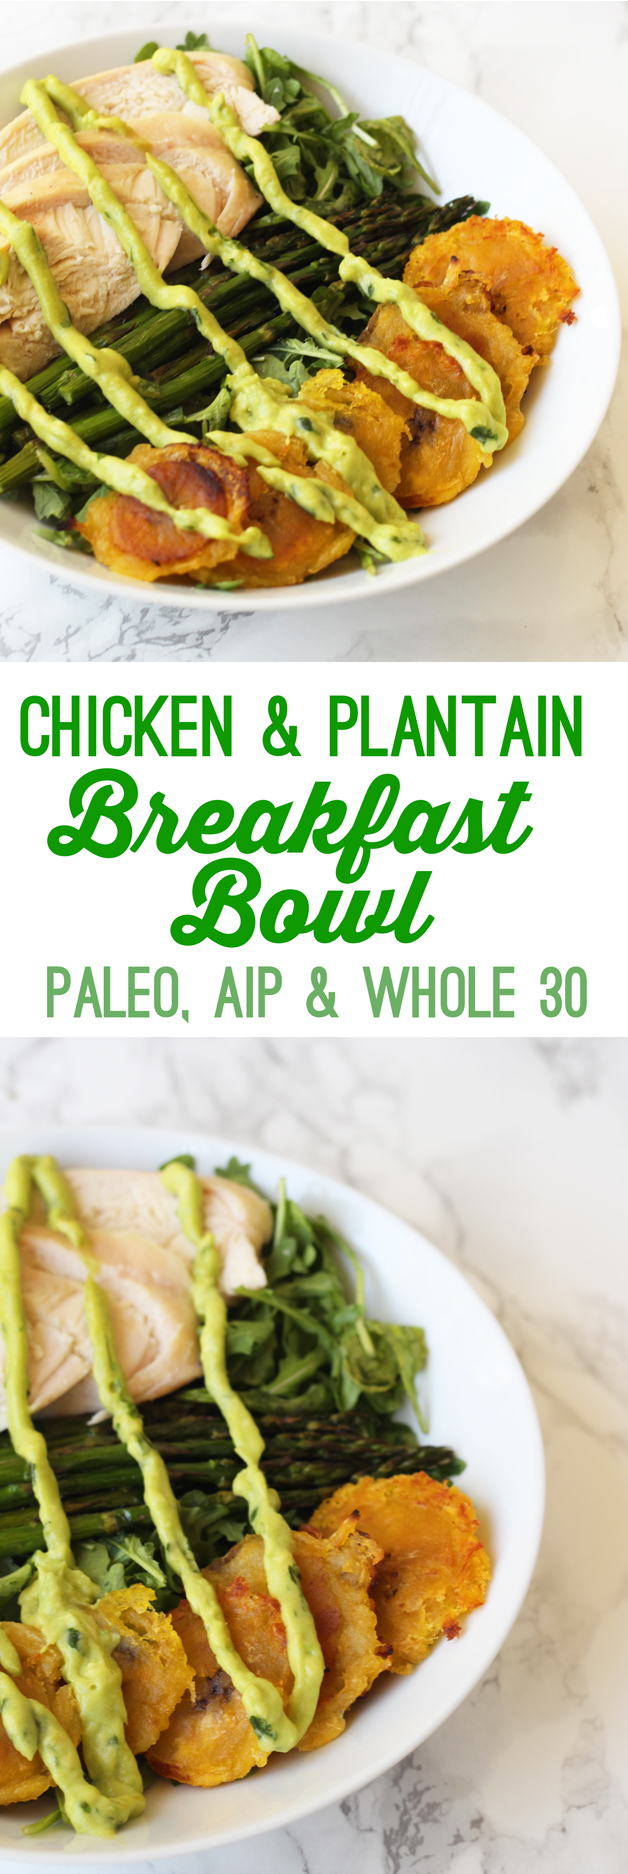 Chicken & Plantain Breakfast Bowl (Whole 30, AIP, Paleo)